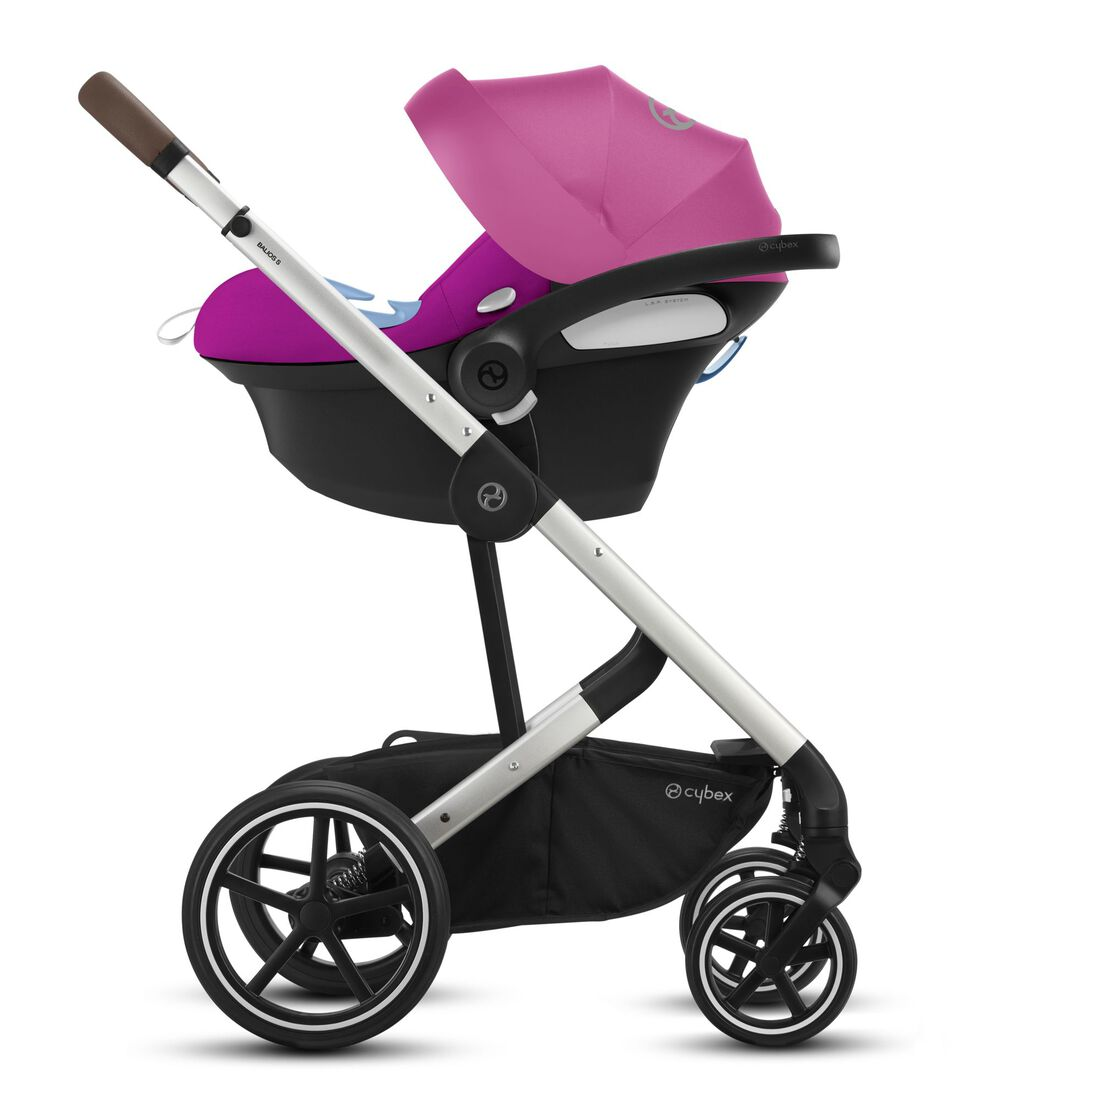 CYBEX Balios S Lux - Magnolia Pink (Silver Frame) in Magnolia Pink (Silver Frame) large image number 3